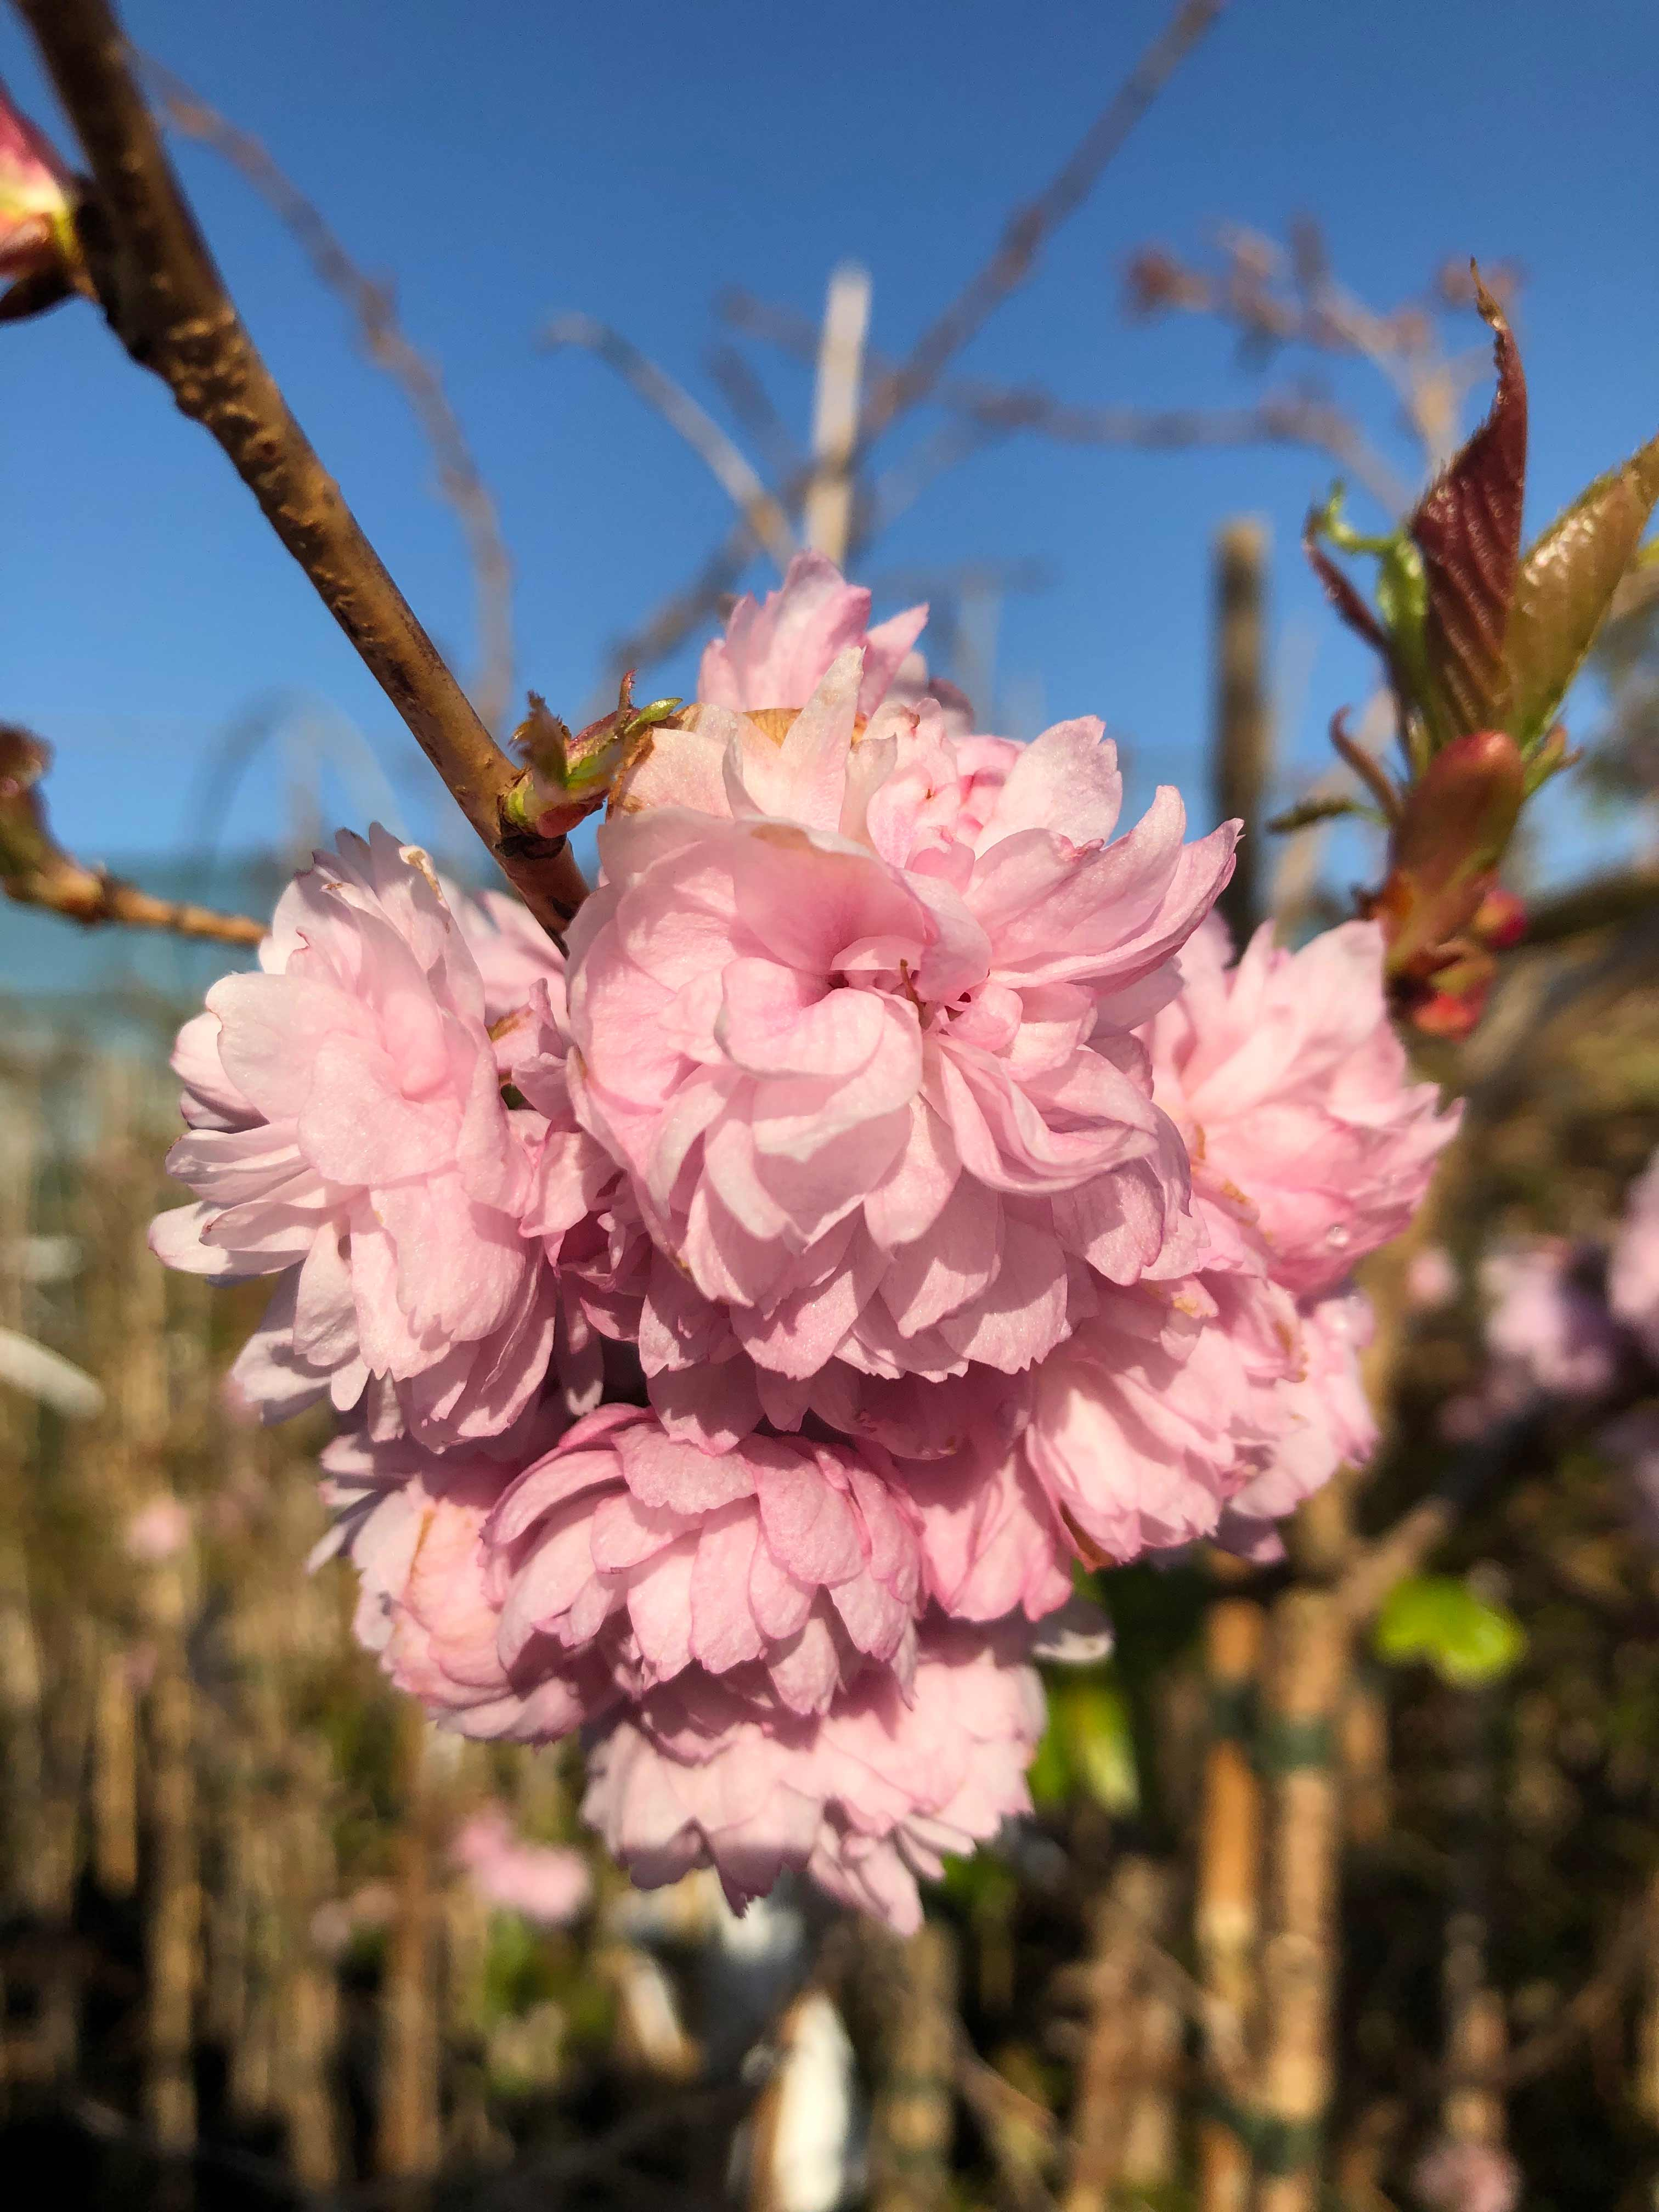 Flowering Cherries/Plums